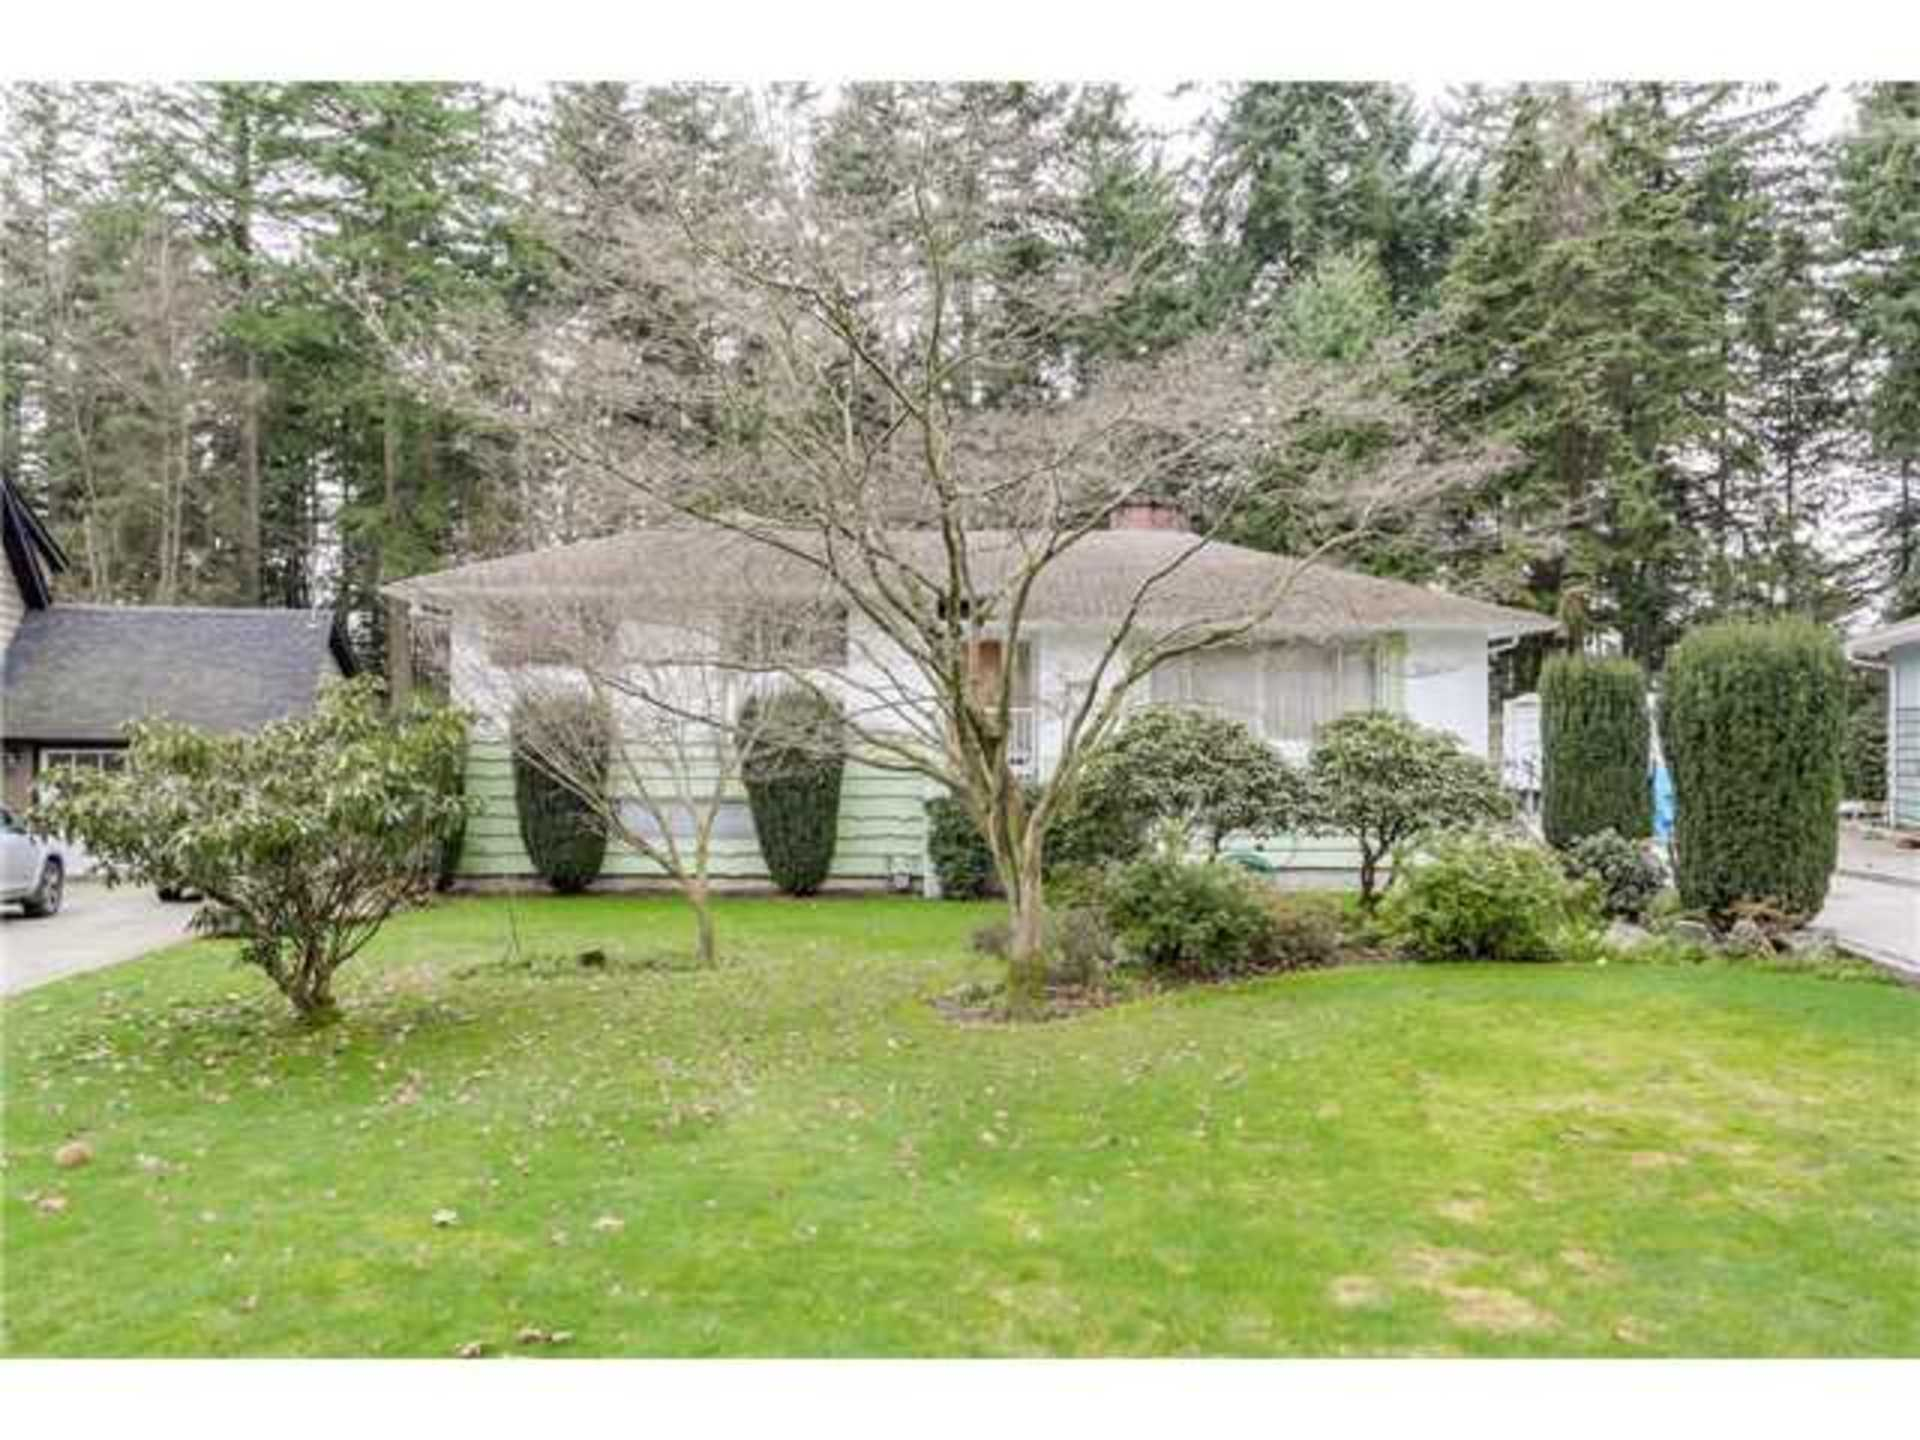 707 Browling Pl, Blueridge NV, North Vancouver